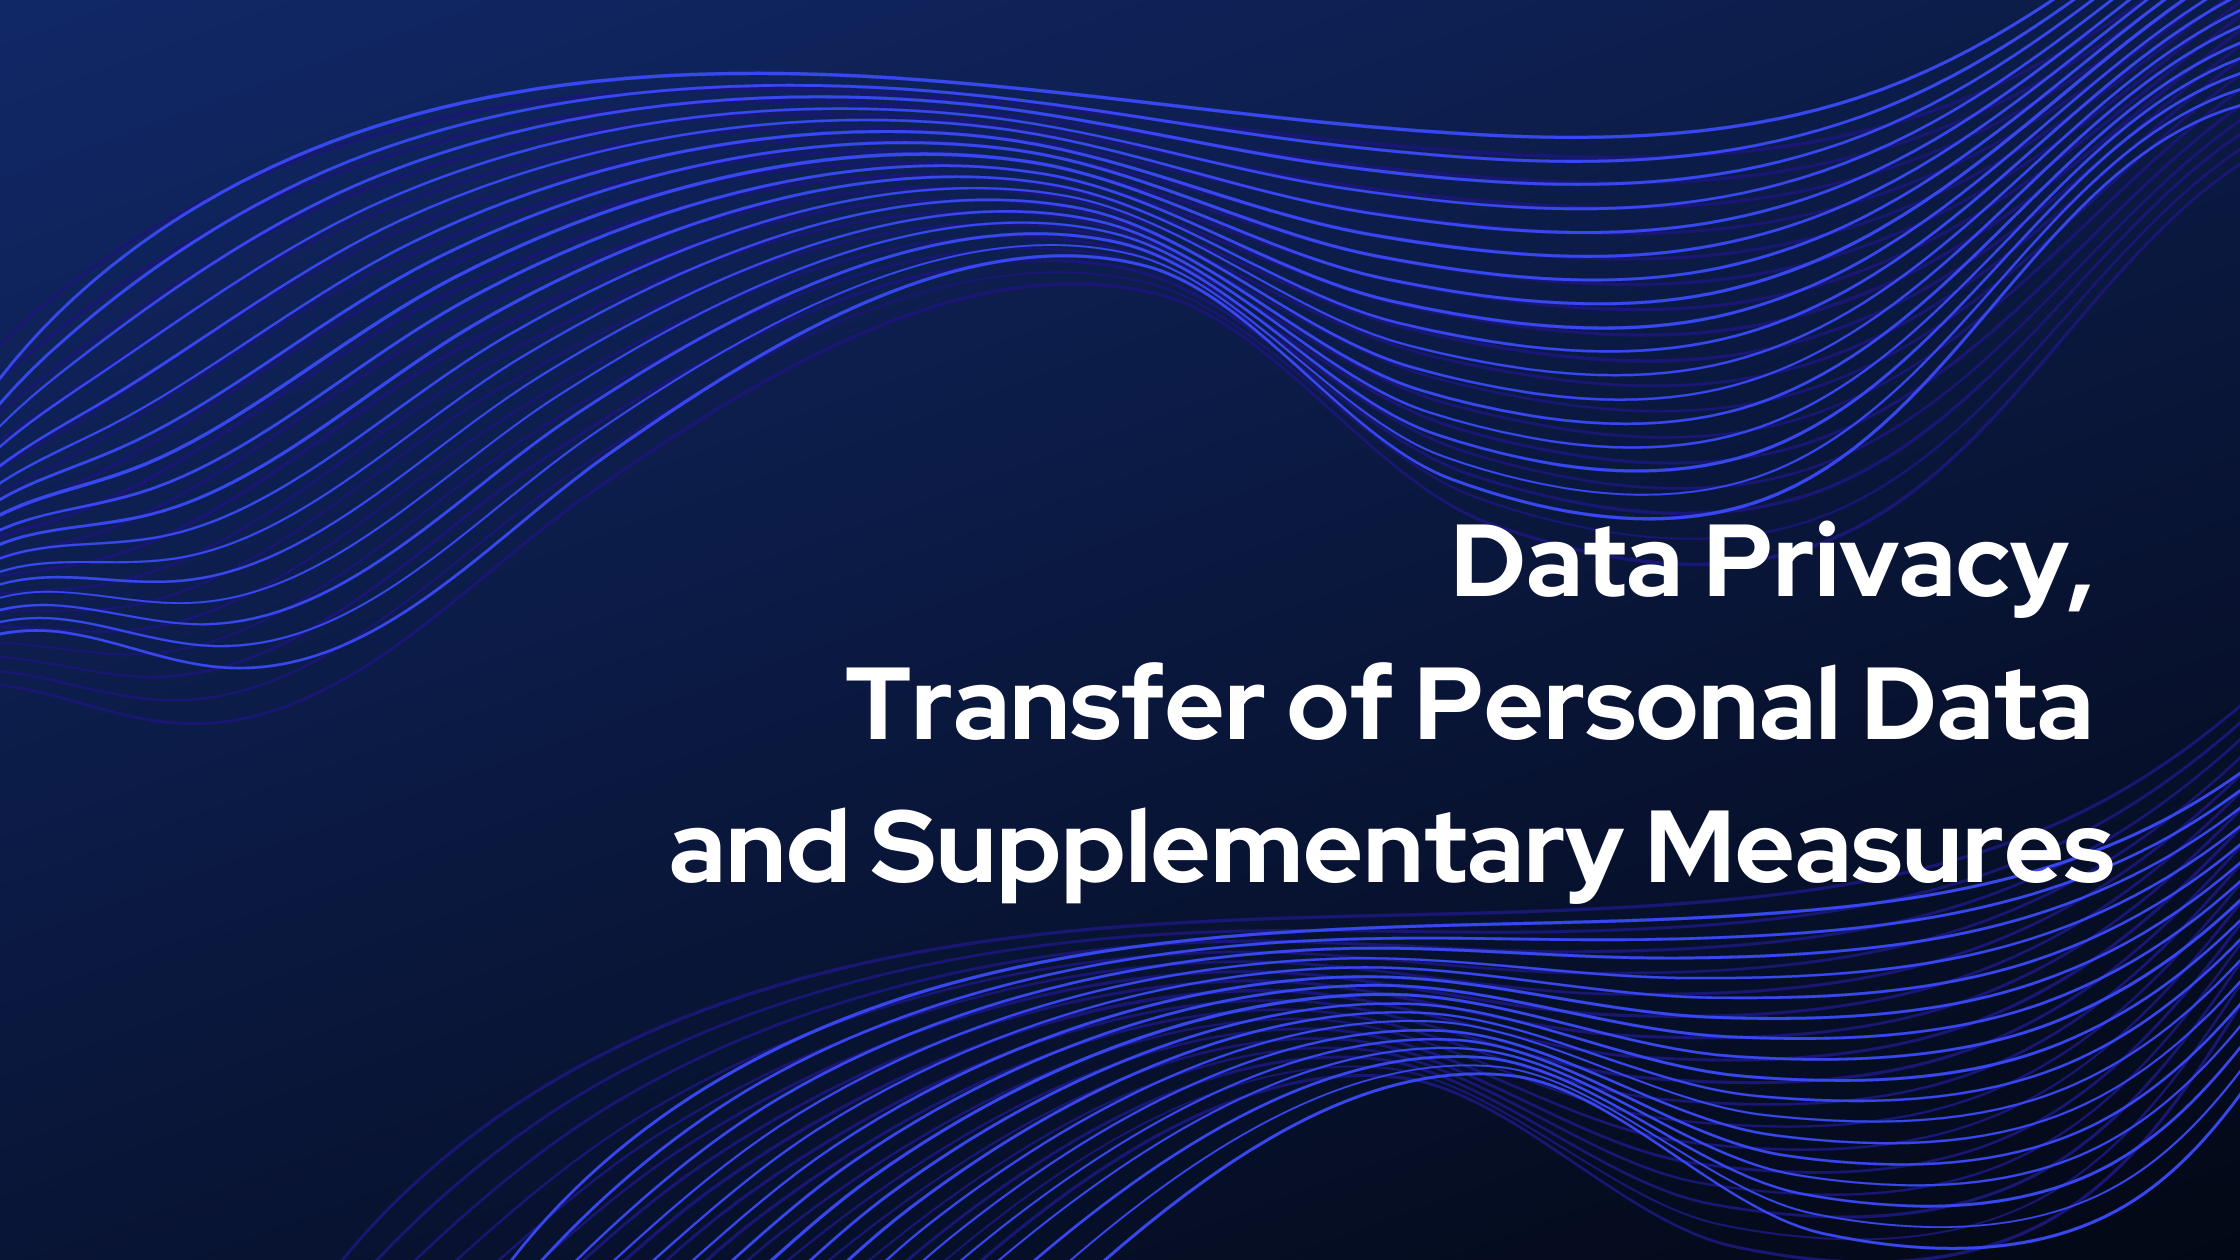 Transfer of personal data